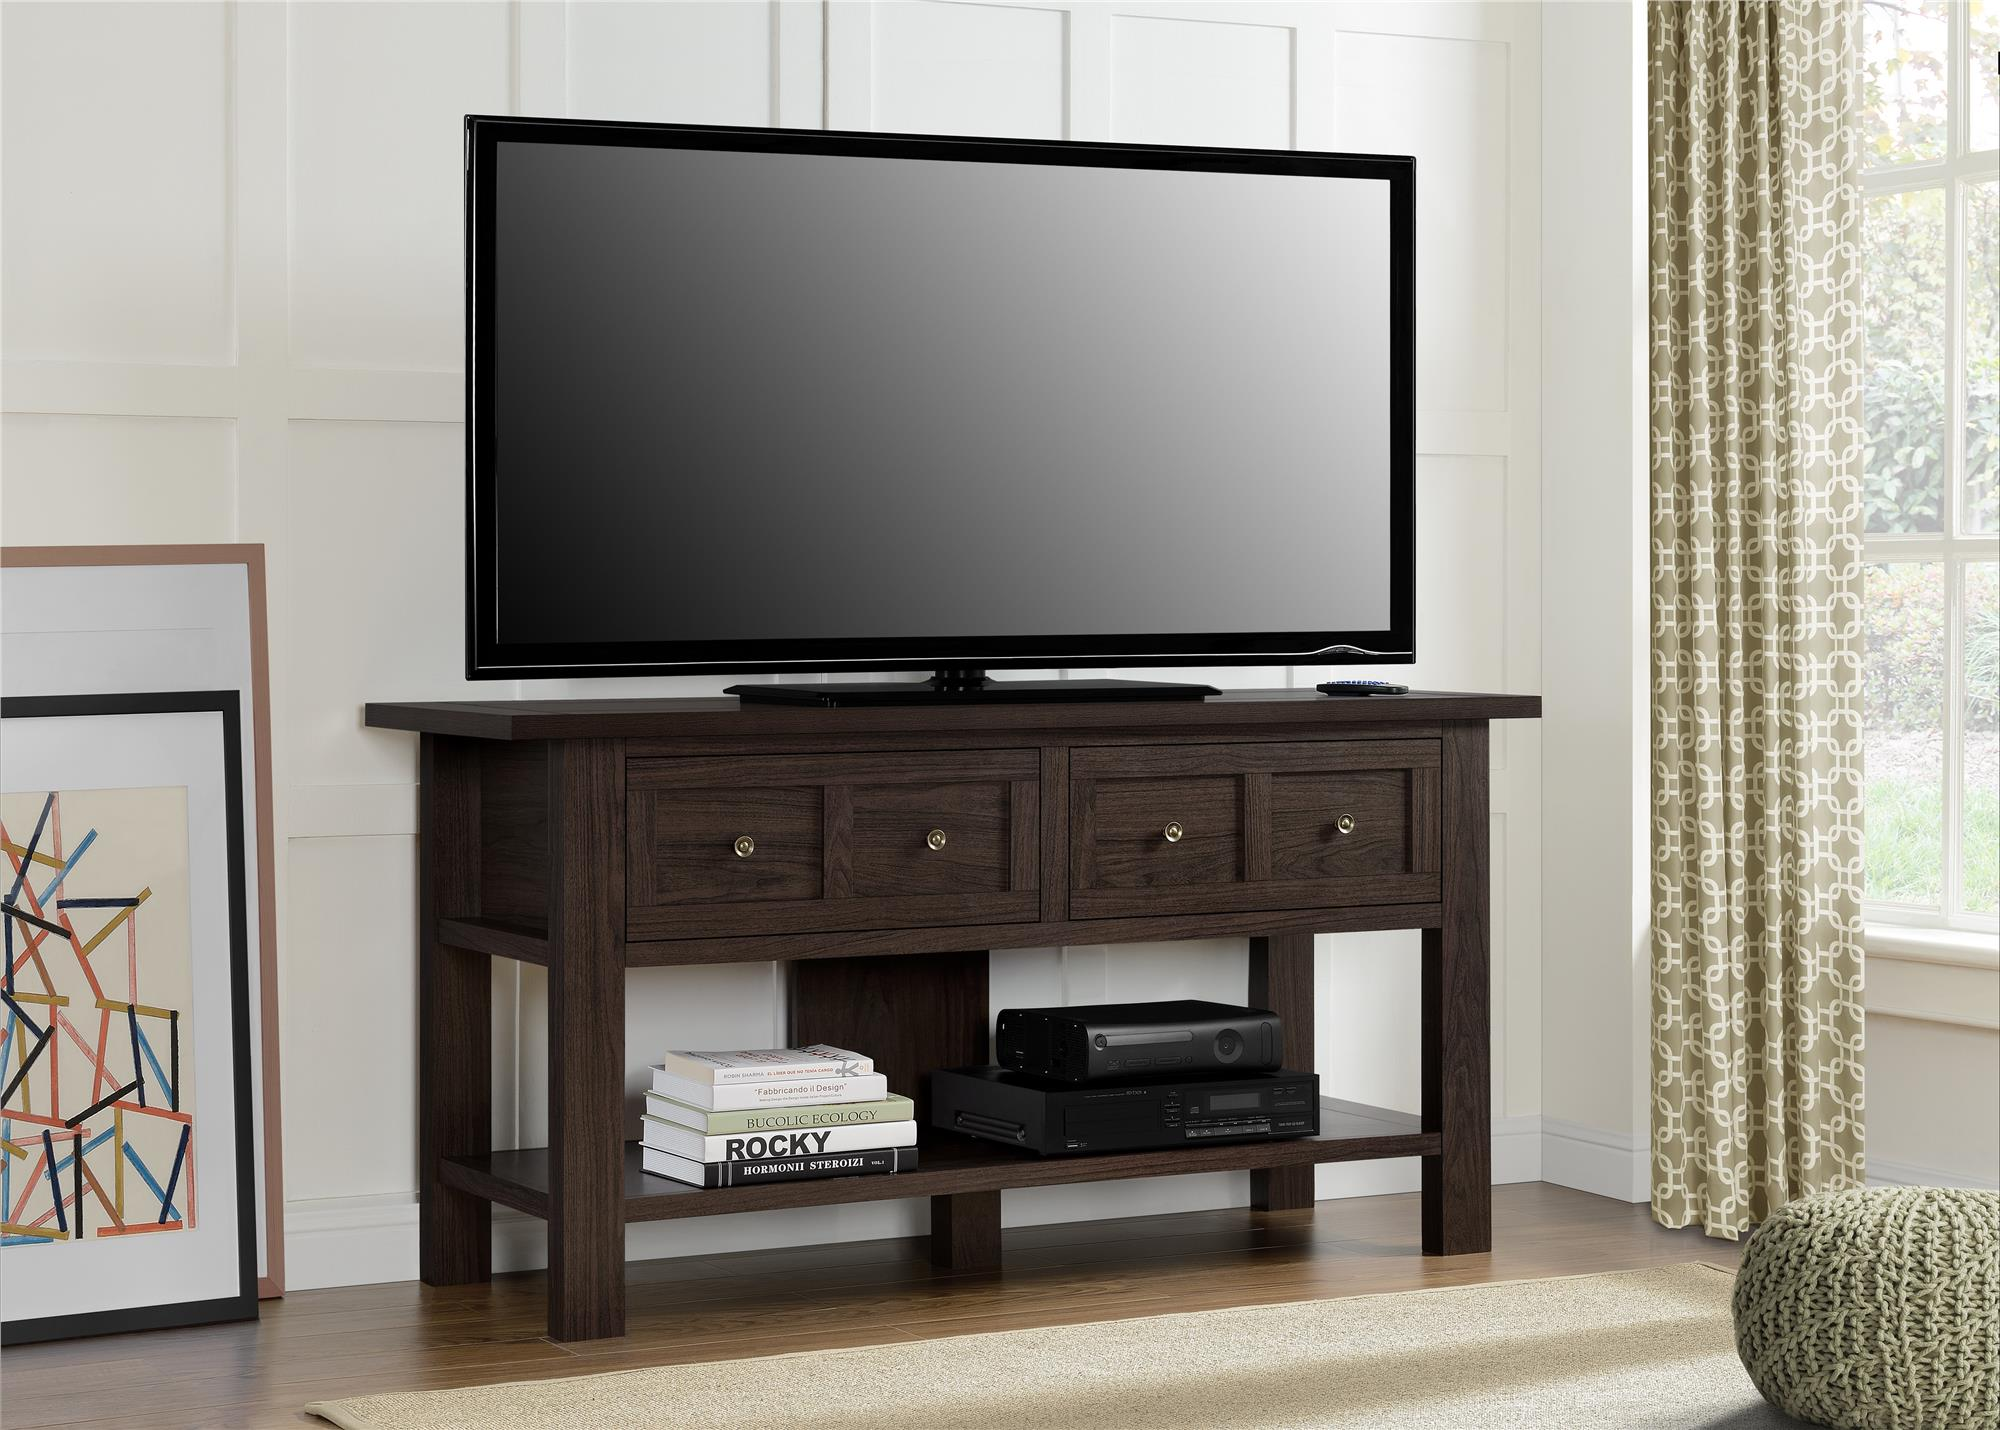 Table De Television Beautiful Meuble Tele Design With Table De  # Meuble Tv Egizia